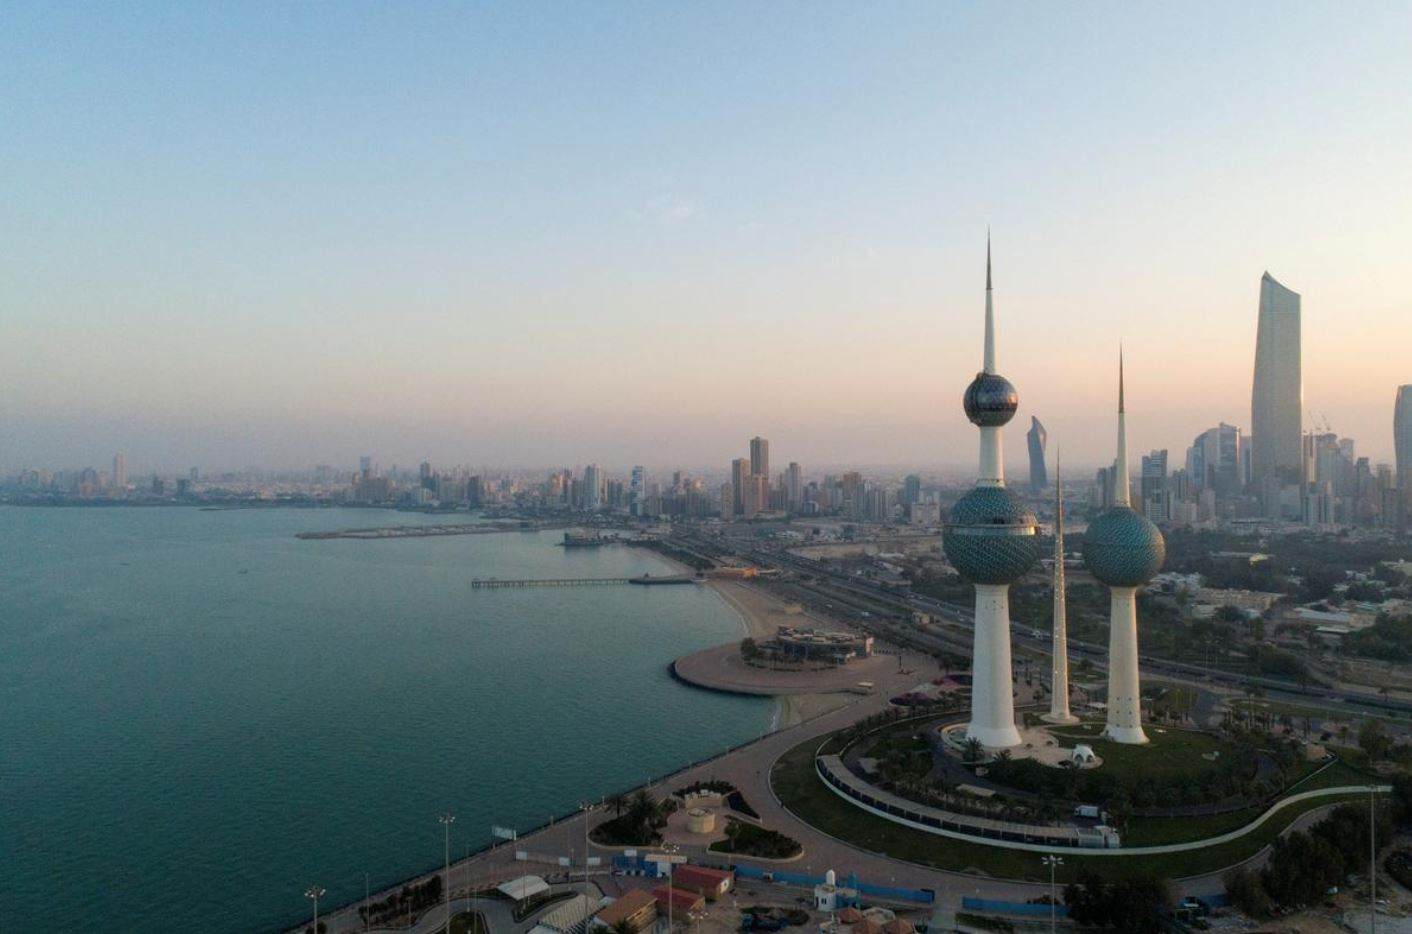 Kuwait extends holiday; increases curfew period to curb pandemic